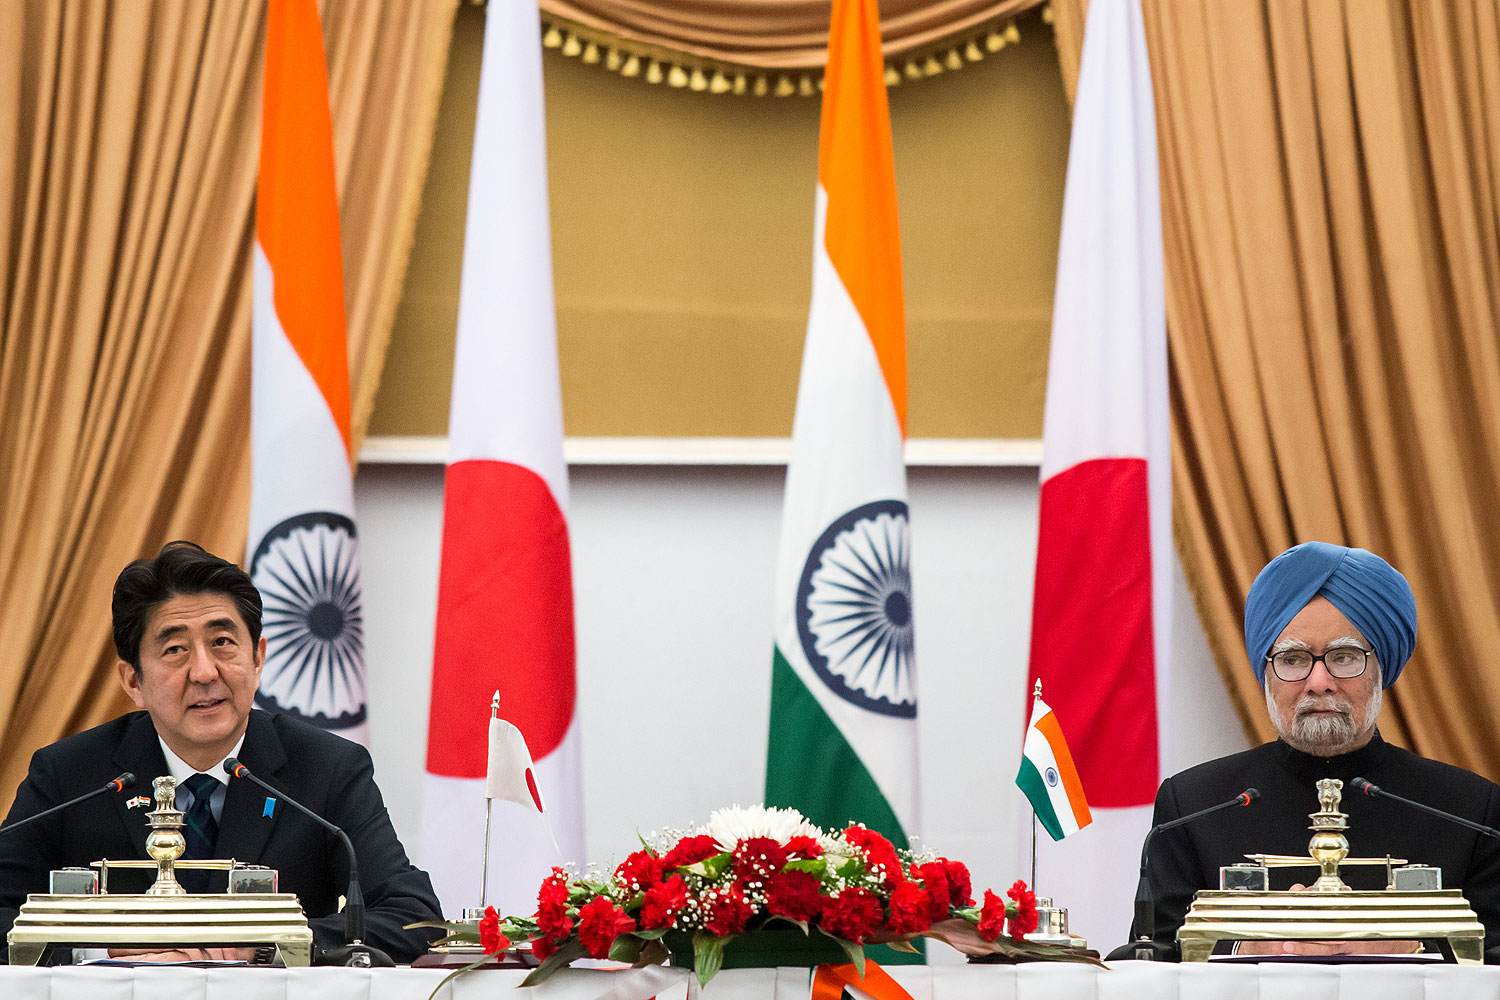 Shinzo Abe, Japans prime minister, left, and Manmohan Singh, India's prime minister, attend a news conference at Hyderabad House in New Delhi, India, on  Jan. 25, 2014